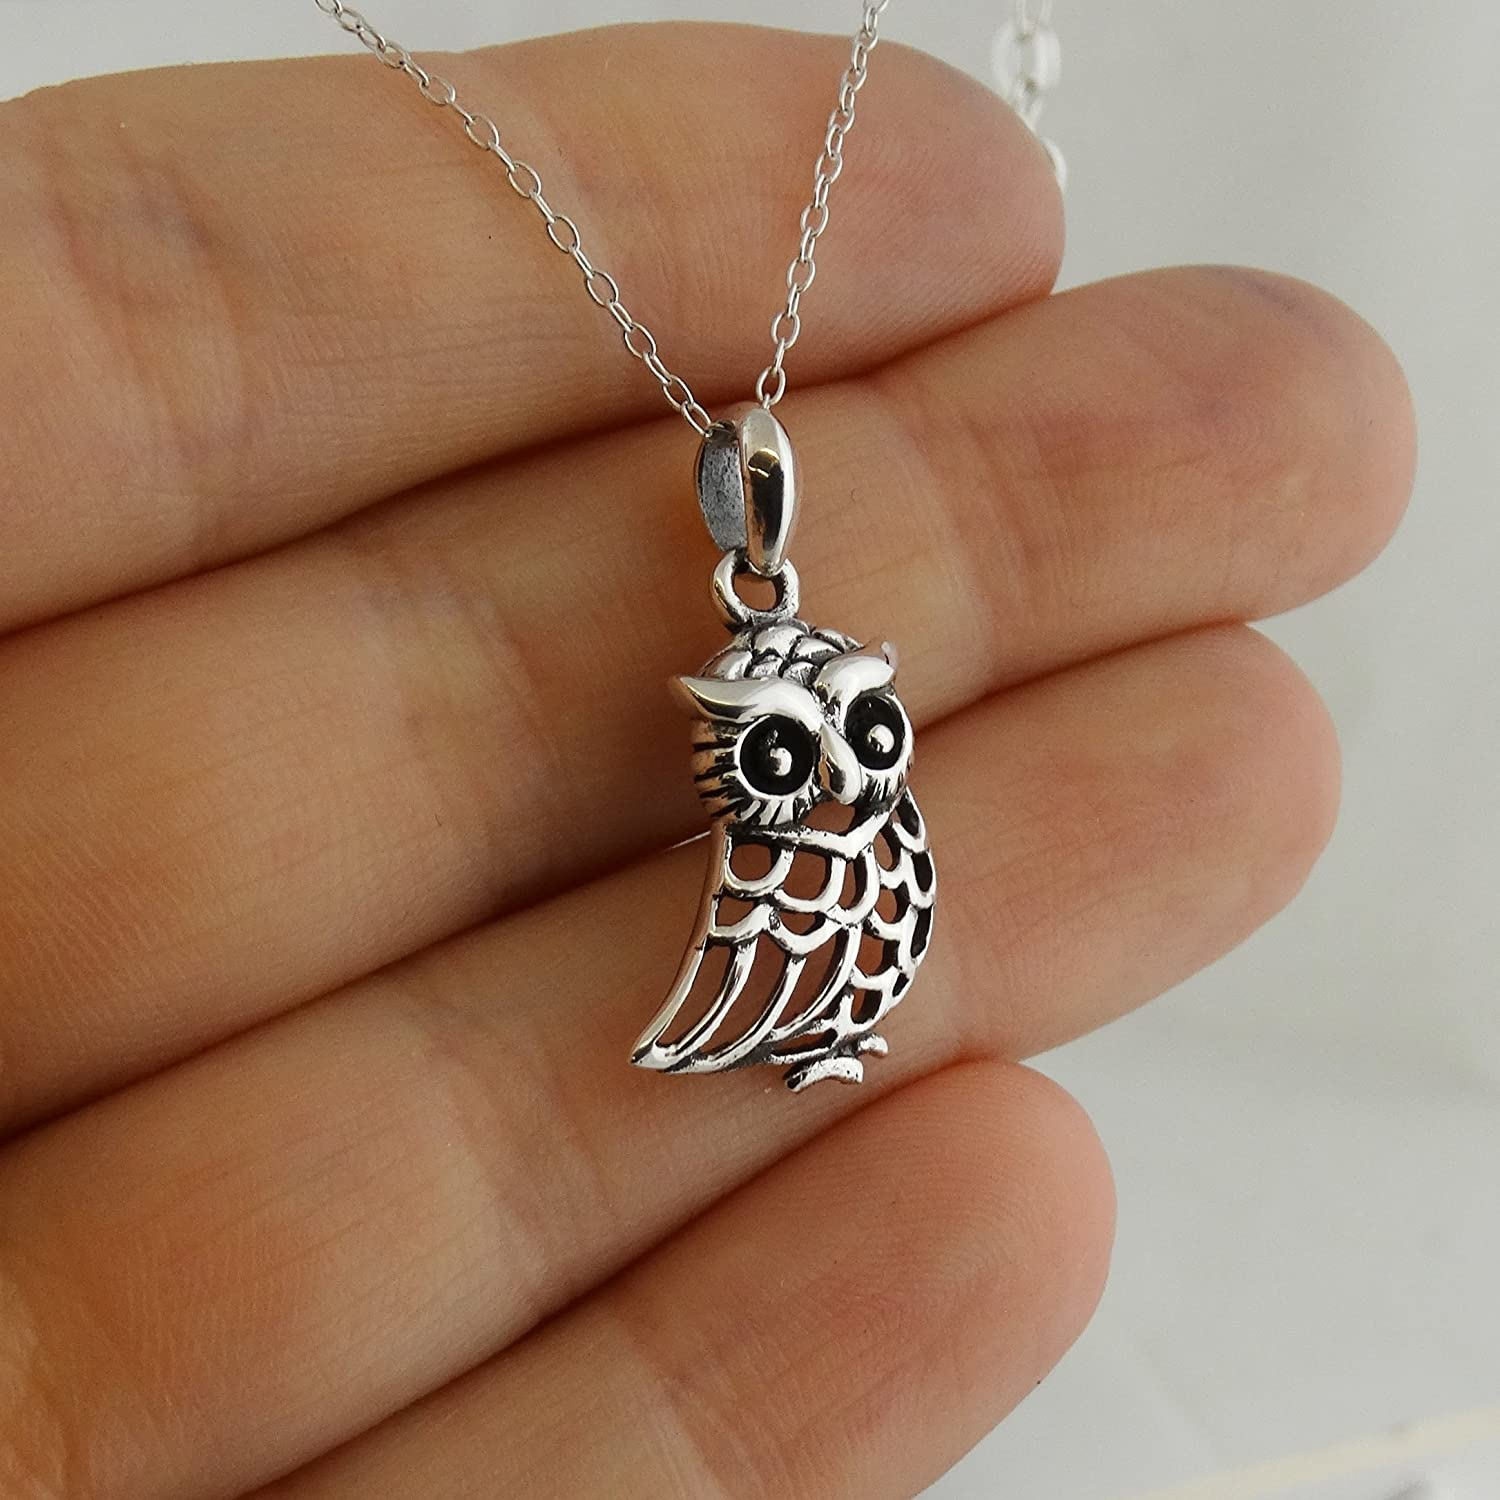 FashionJunkie4Life Sterling Silver Perched Owl Pendant Necklace 18 Chain